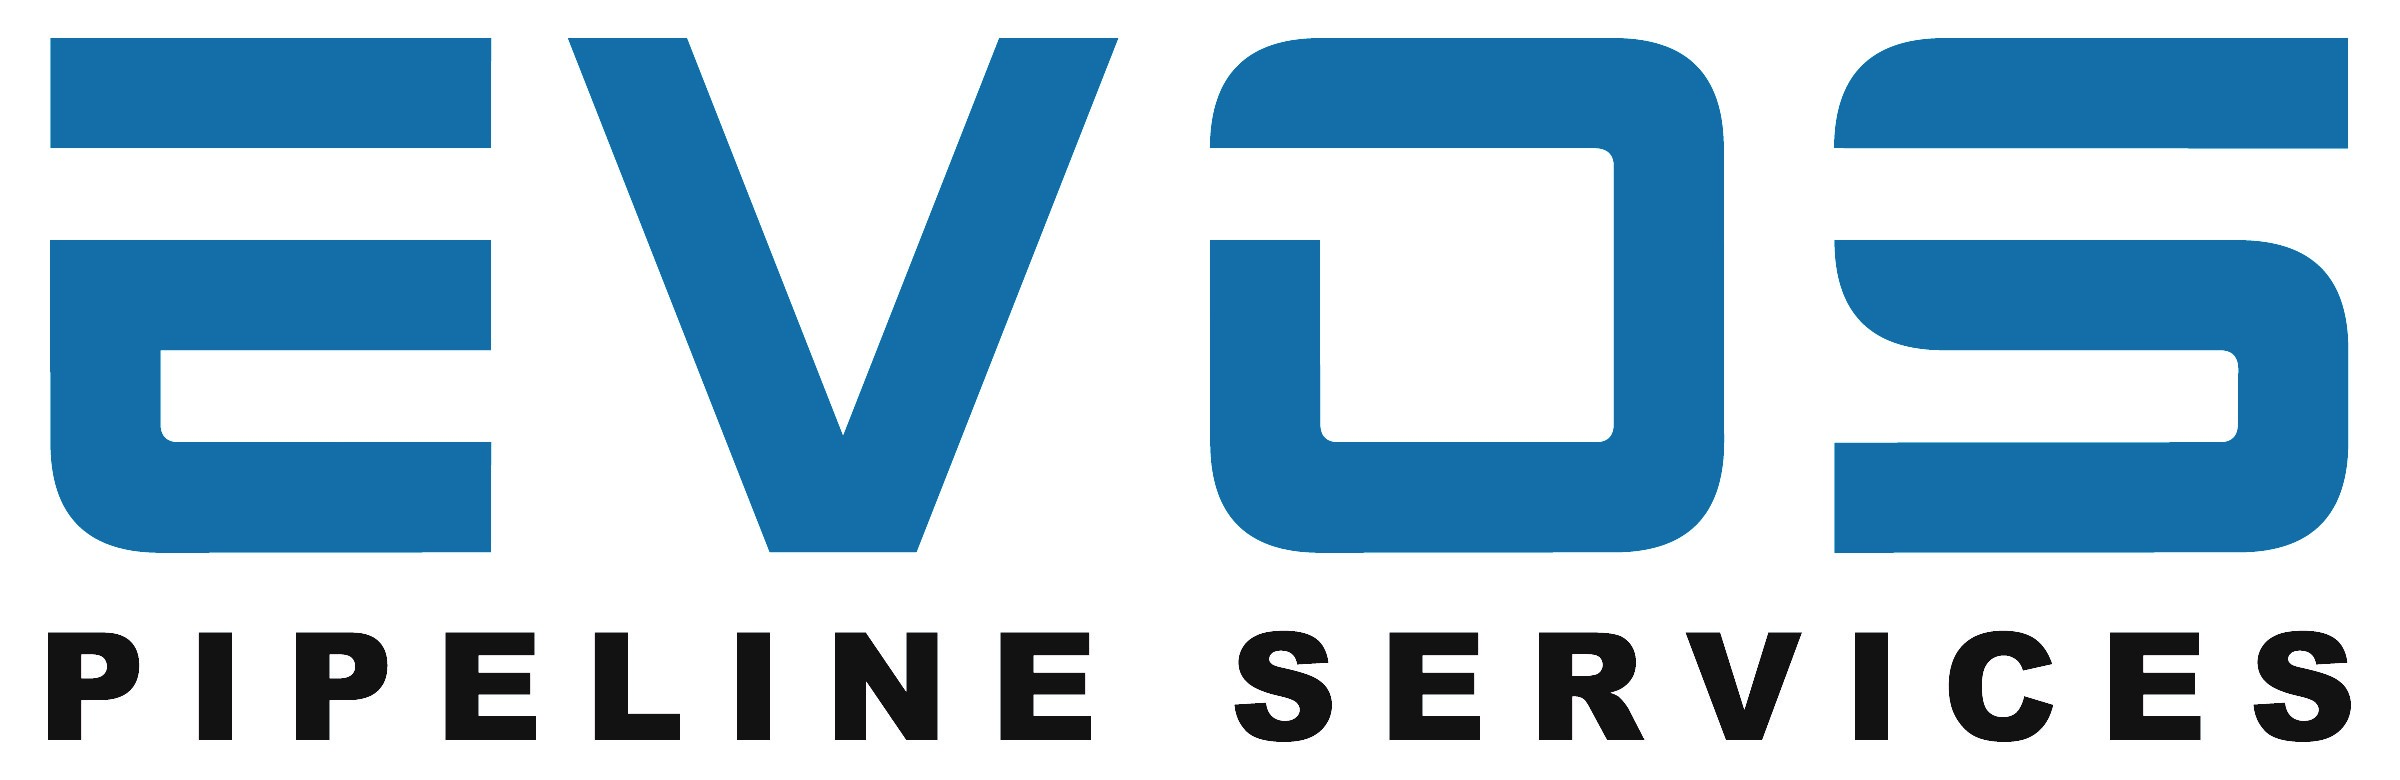 EVOS Pipeline Services Inc.